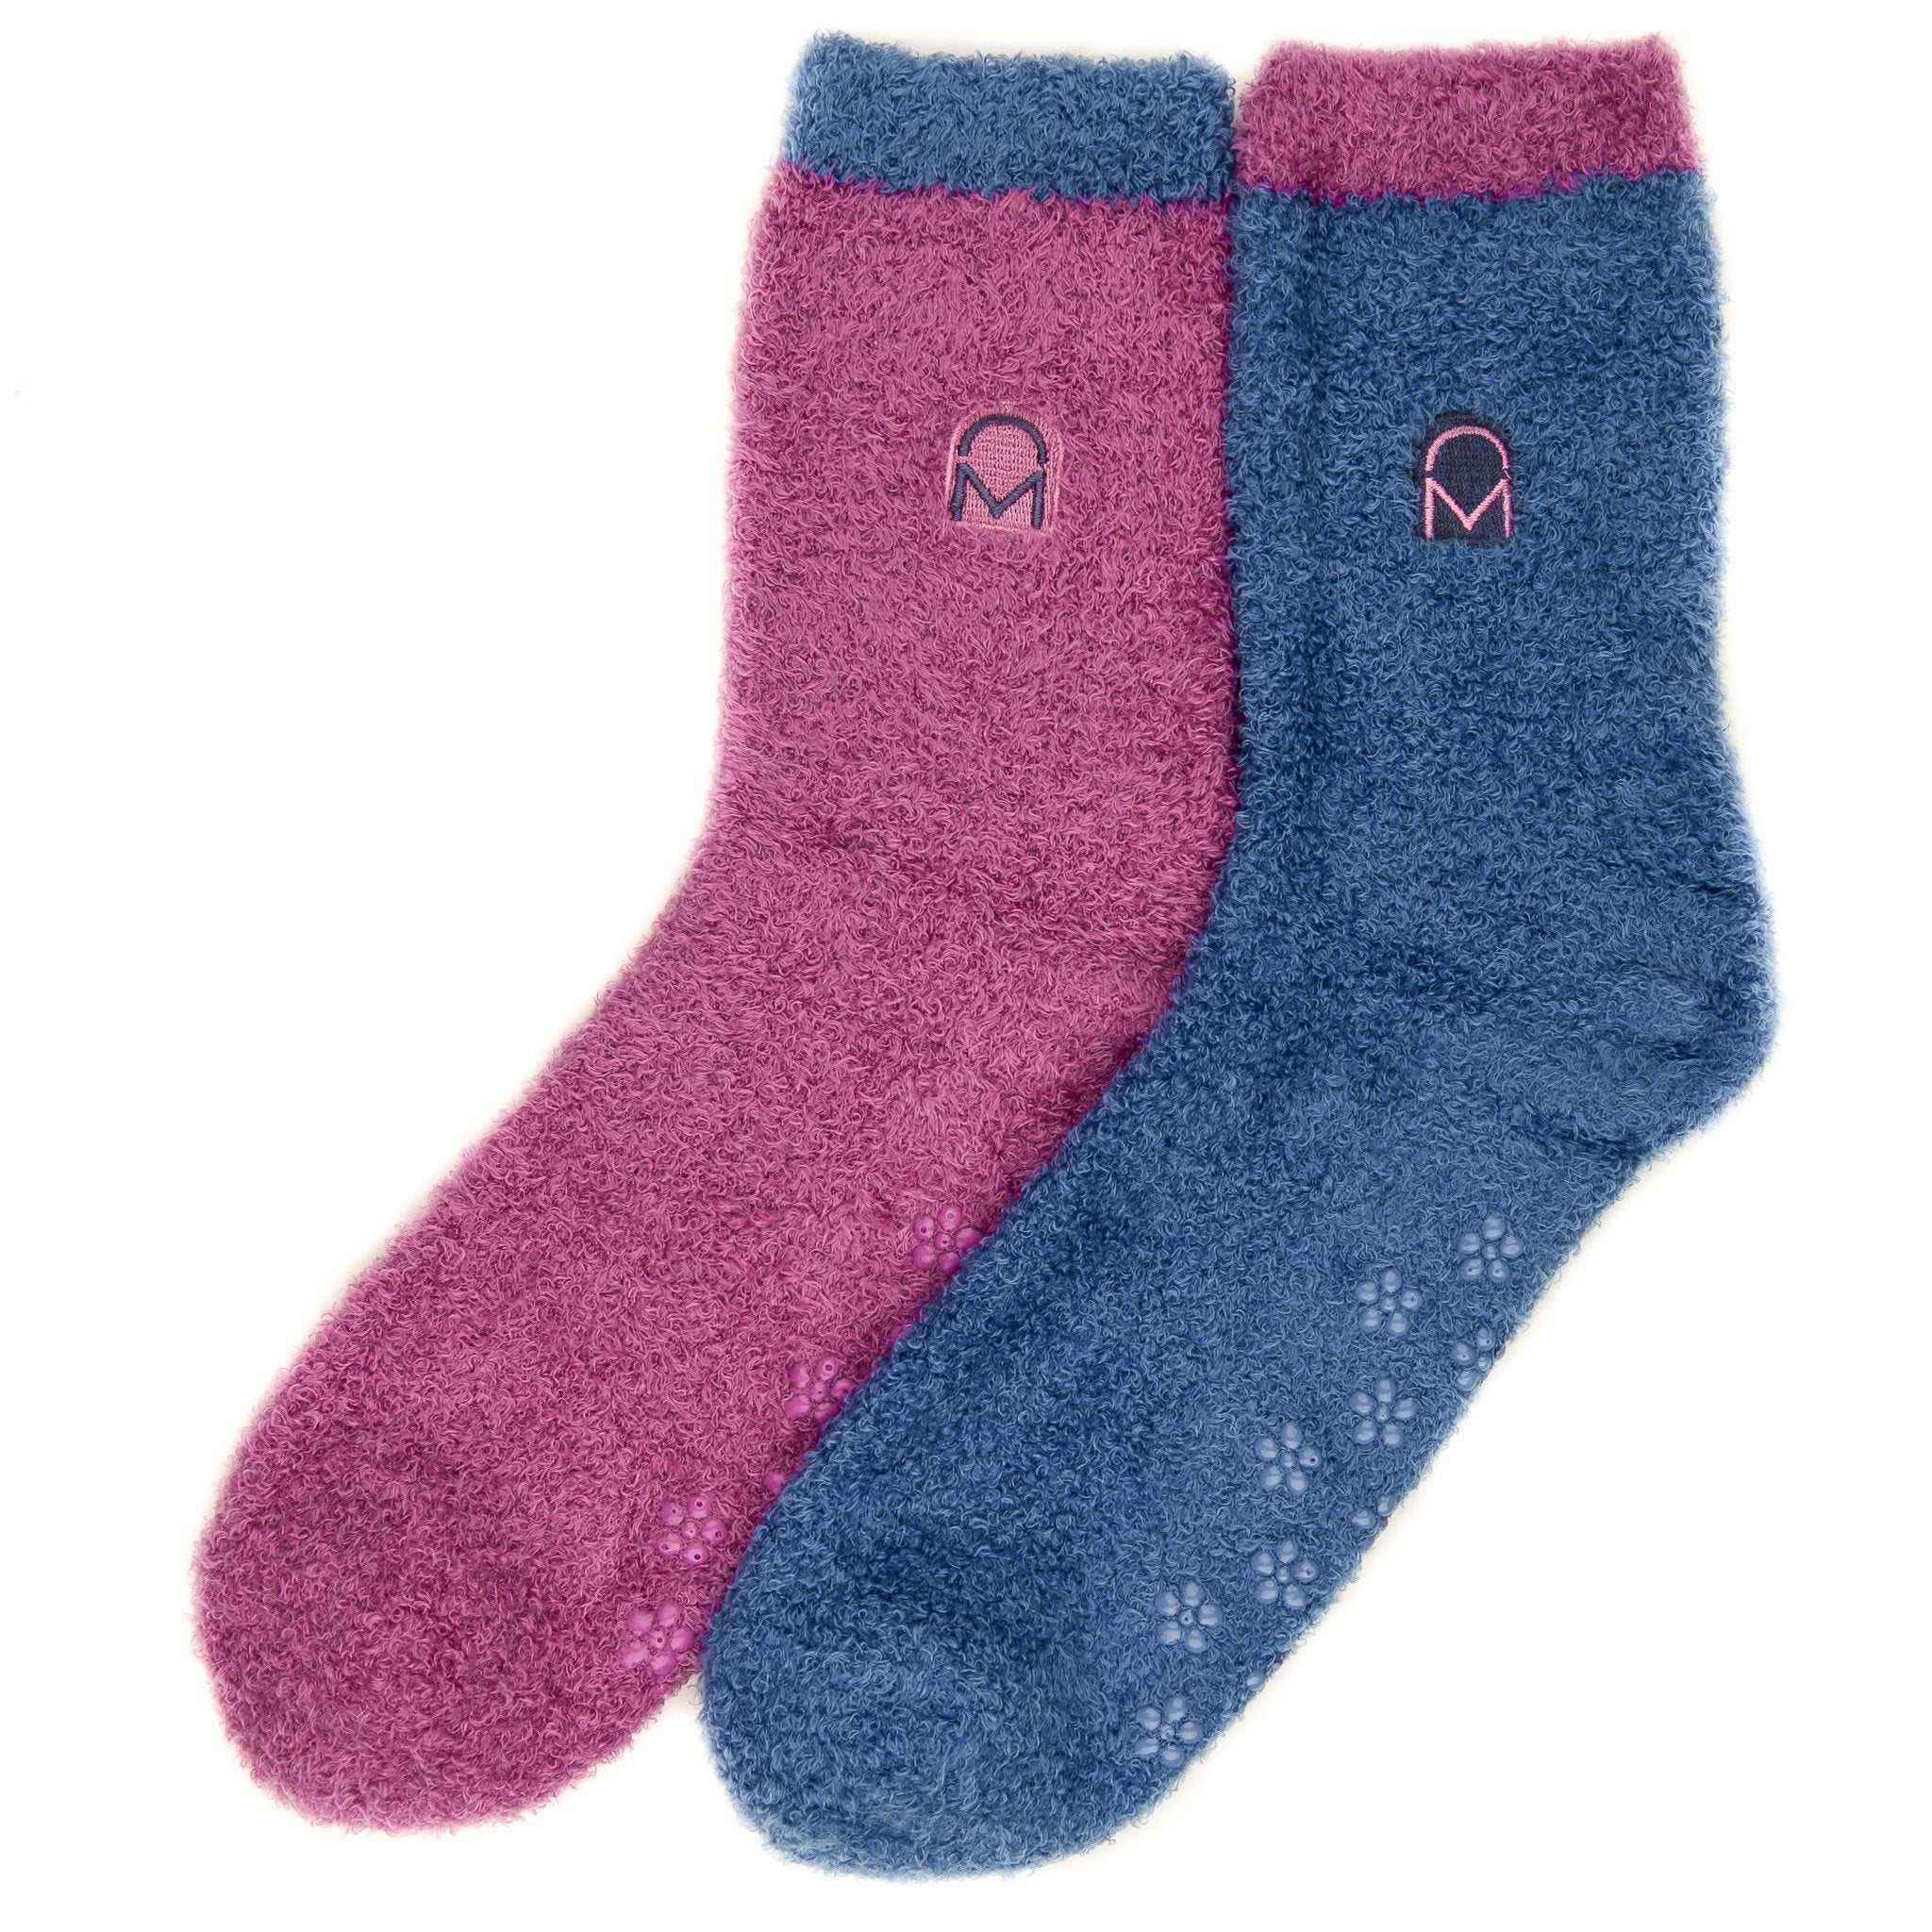 Women's Soft Anti-Skid Winter Feather Socks - 2-Pairs - Set A6